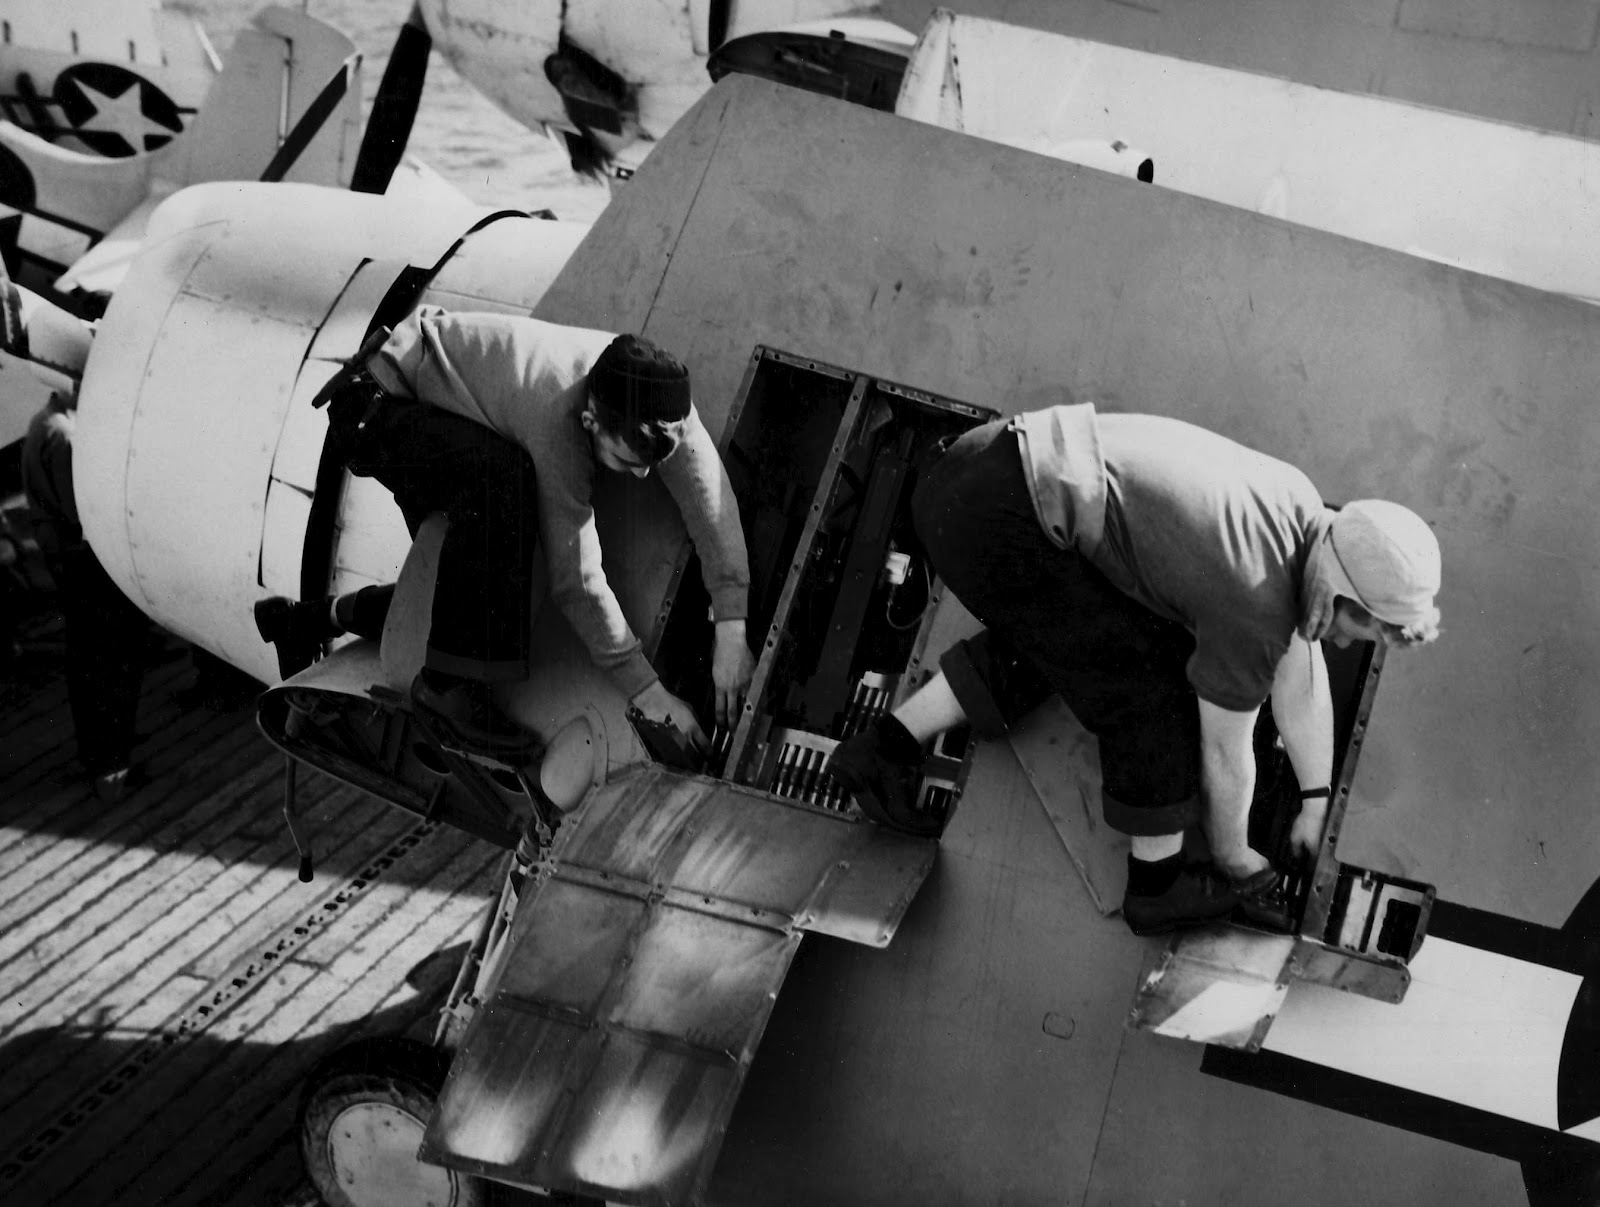 FM 2 Wildcat being rearmed aboard CVE 9 USS Mission Bay 3rd Jan 1944 01